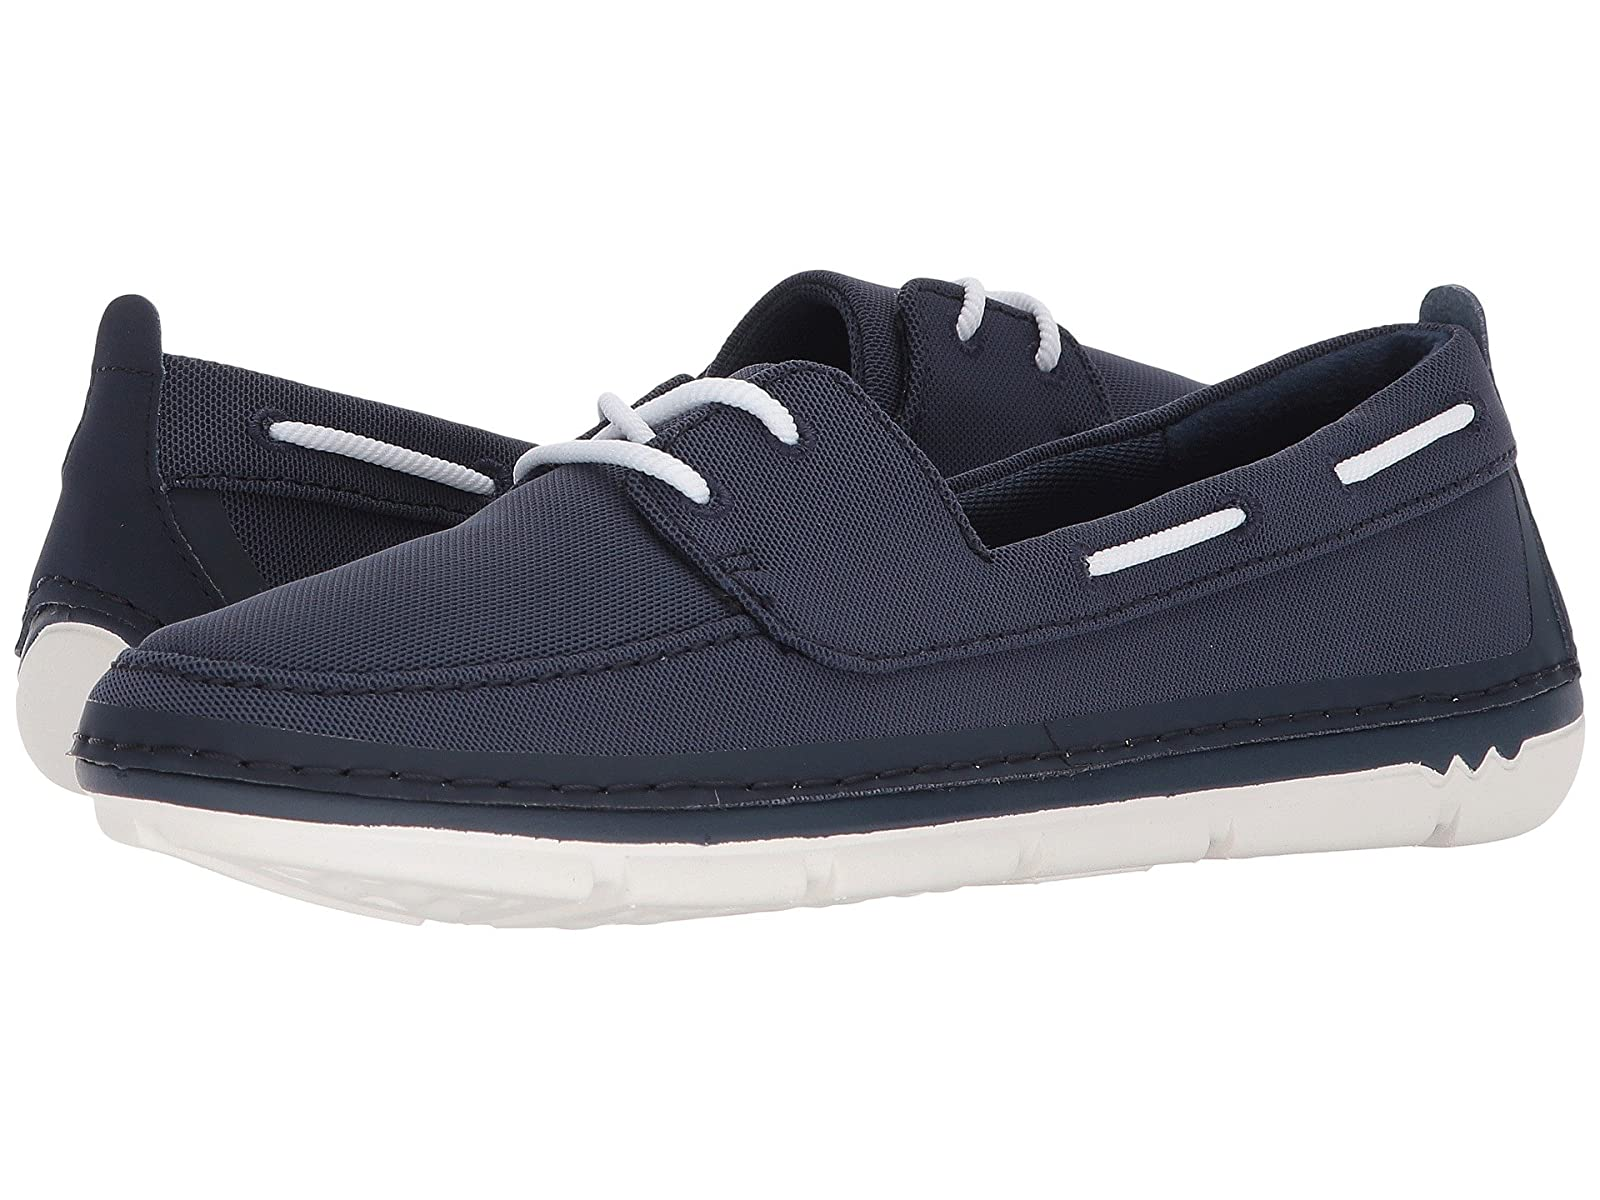 Clarks Step Maro SandCheap and distinctive eye-catching shoes